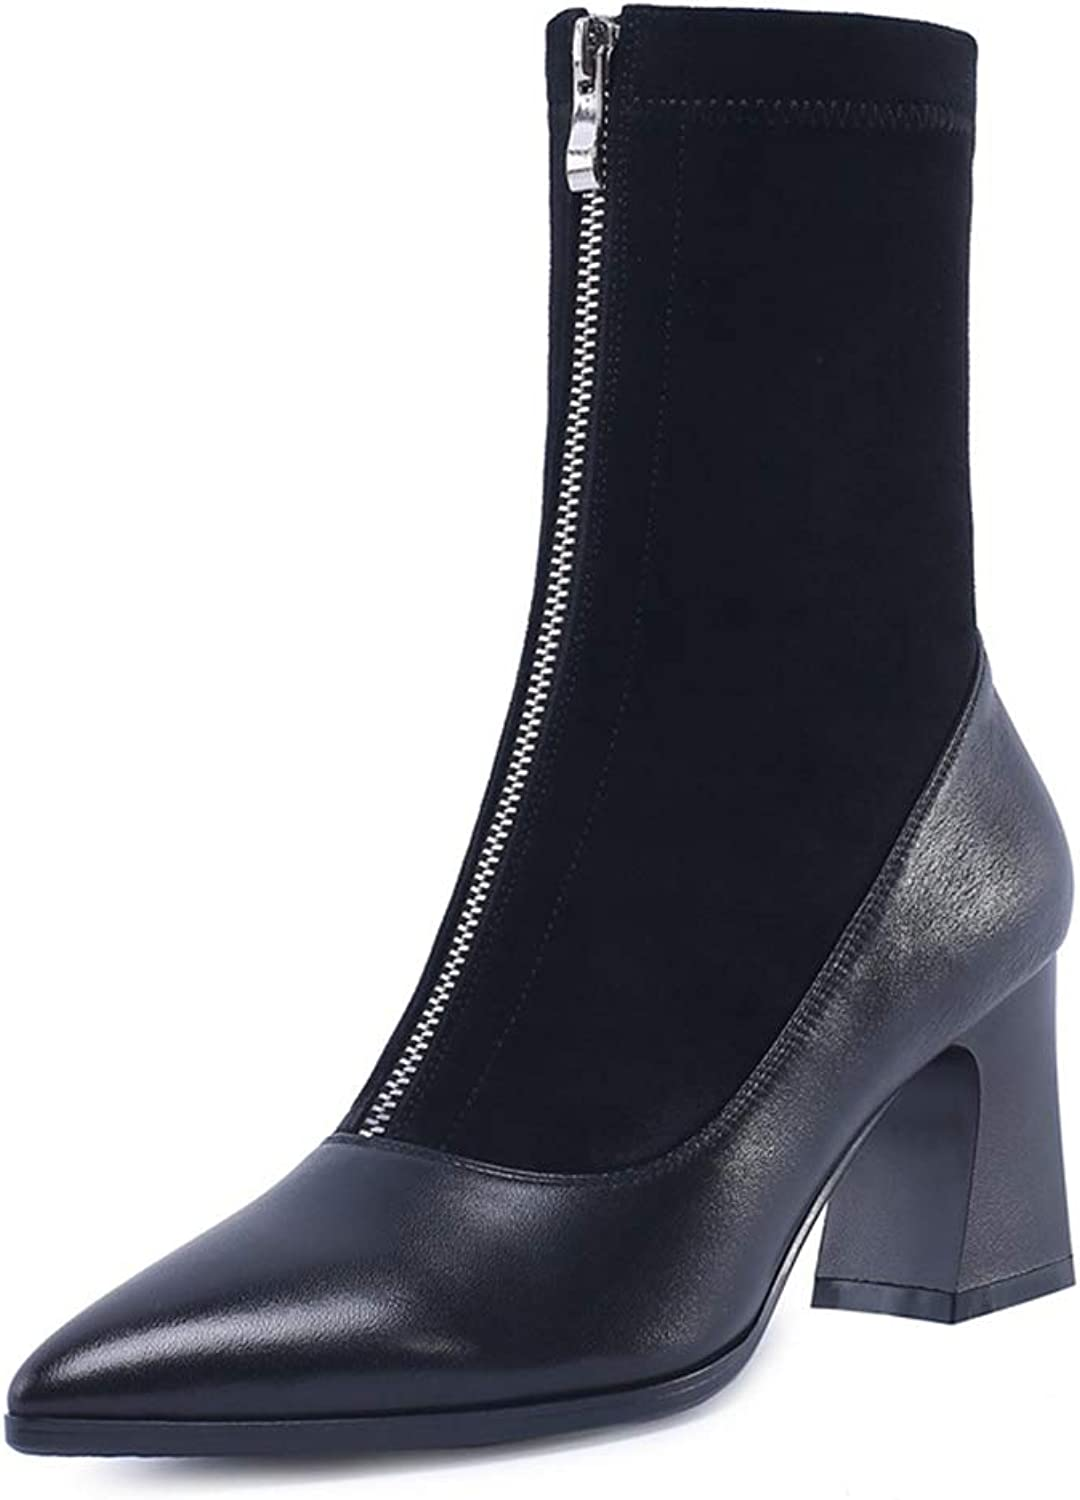 Women's Booties, Fall Winter Leather Socks Boots Ladies Thick Heel Casual Martin Boots (color   A, Size   35)